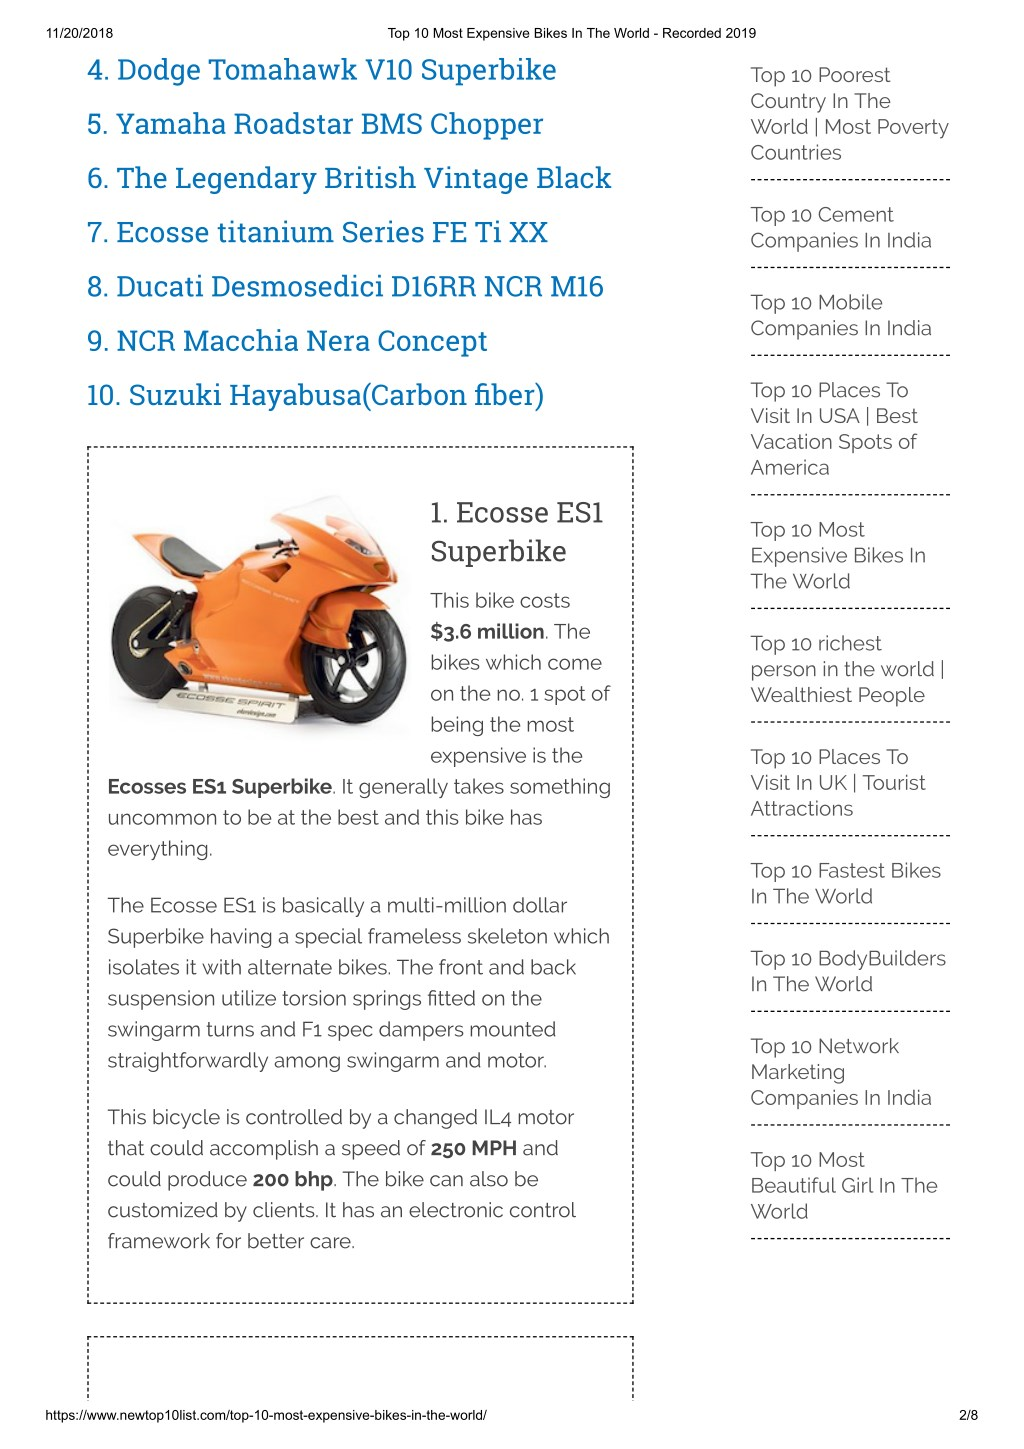 Ppt Top 10 Most Expensive Bikes In The World Powerpoint Presentation Id 8084773